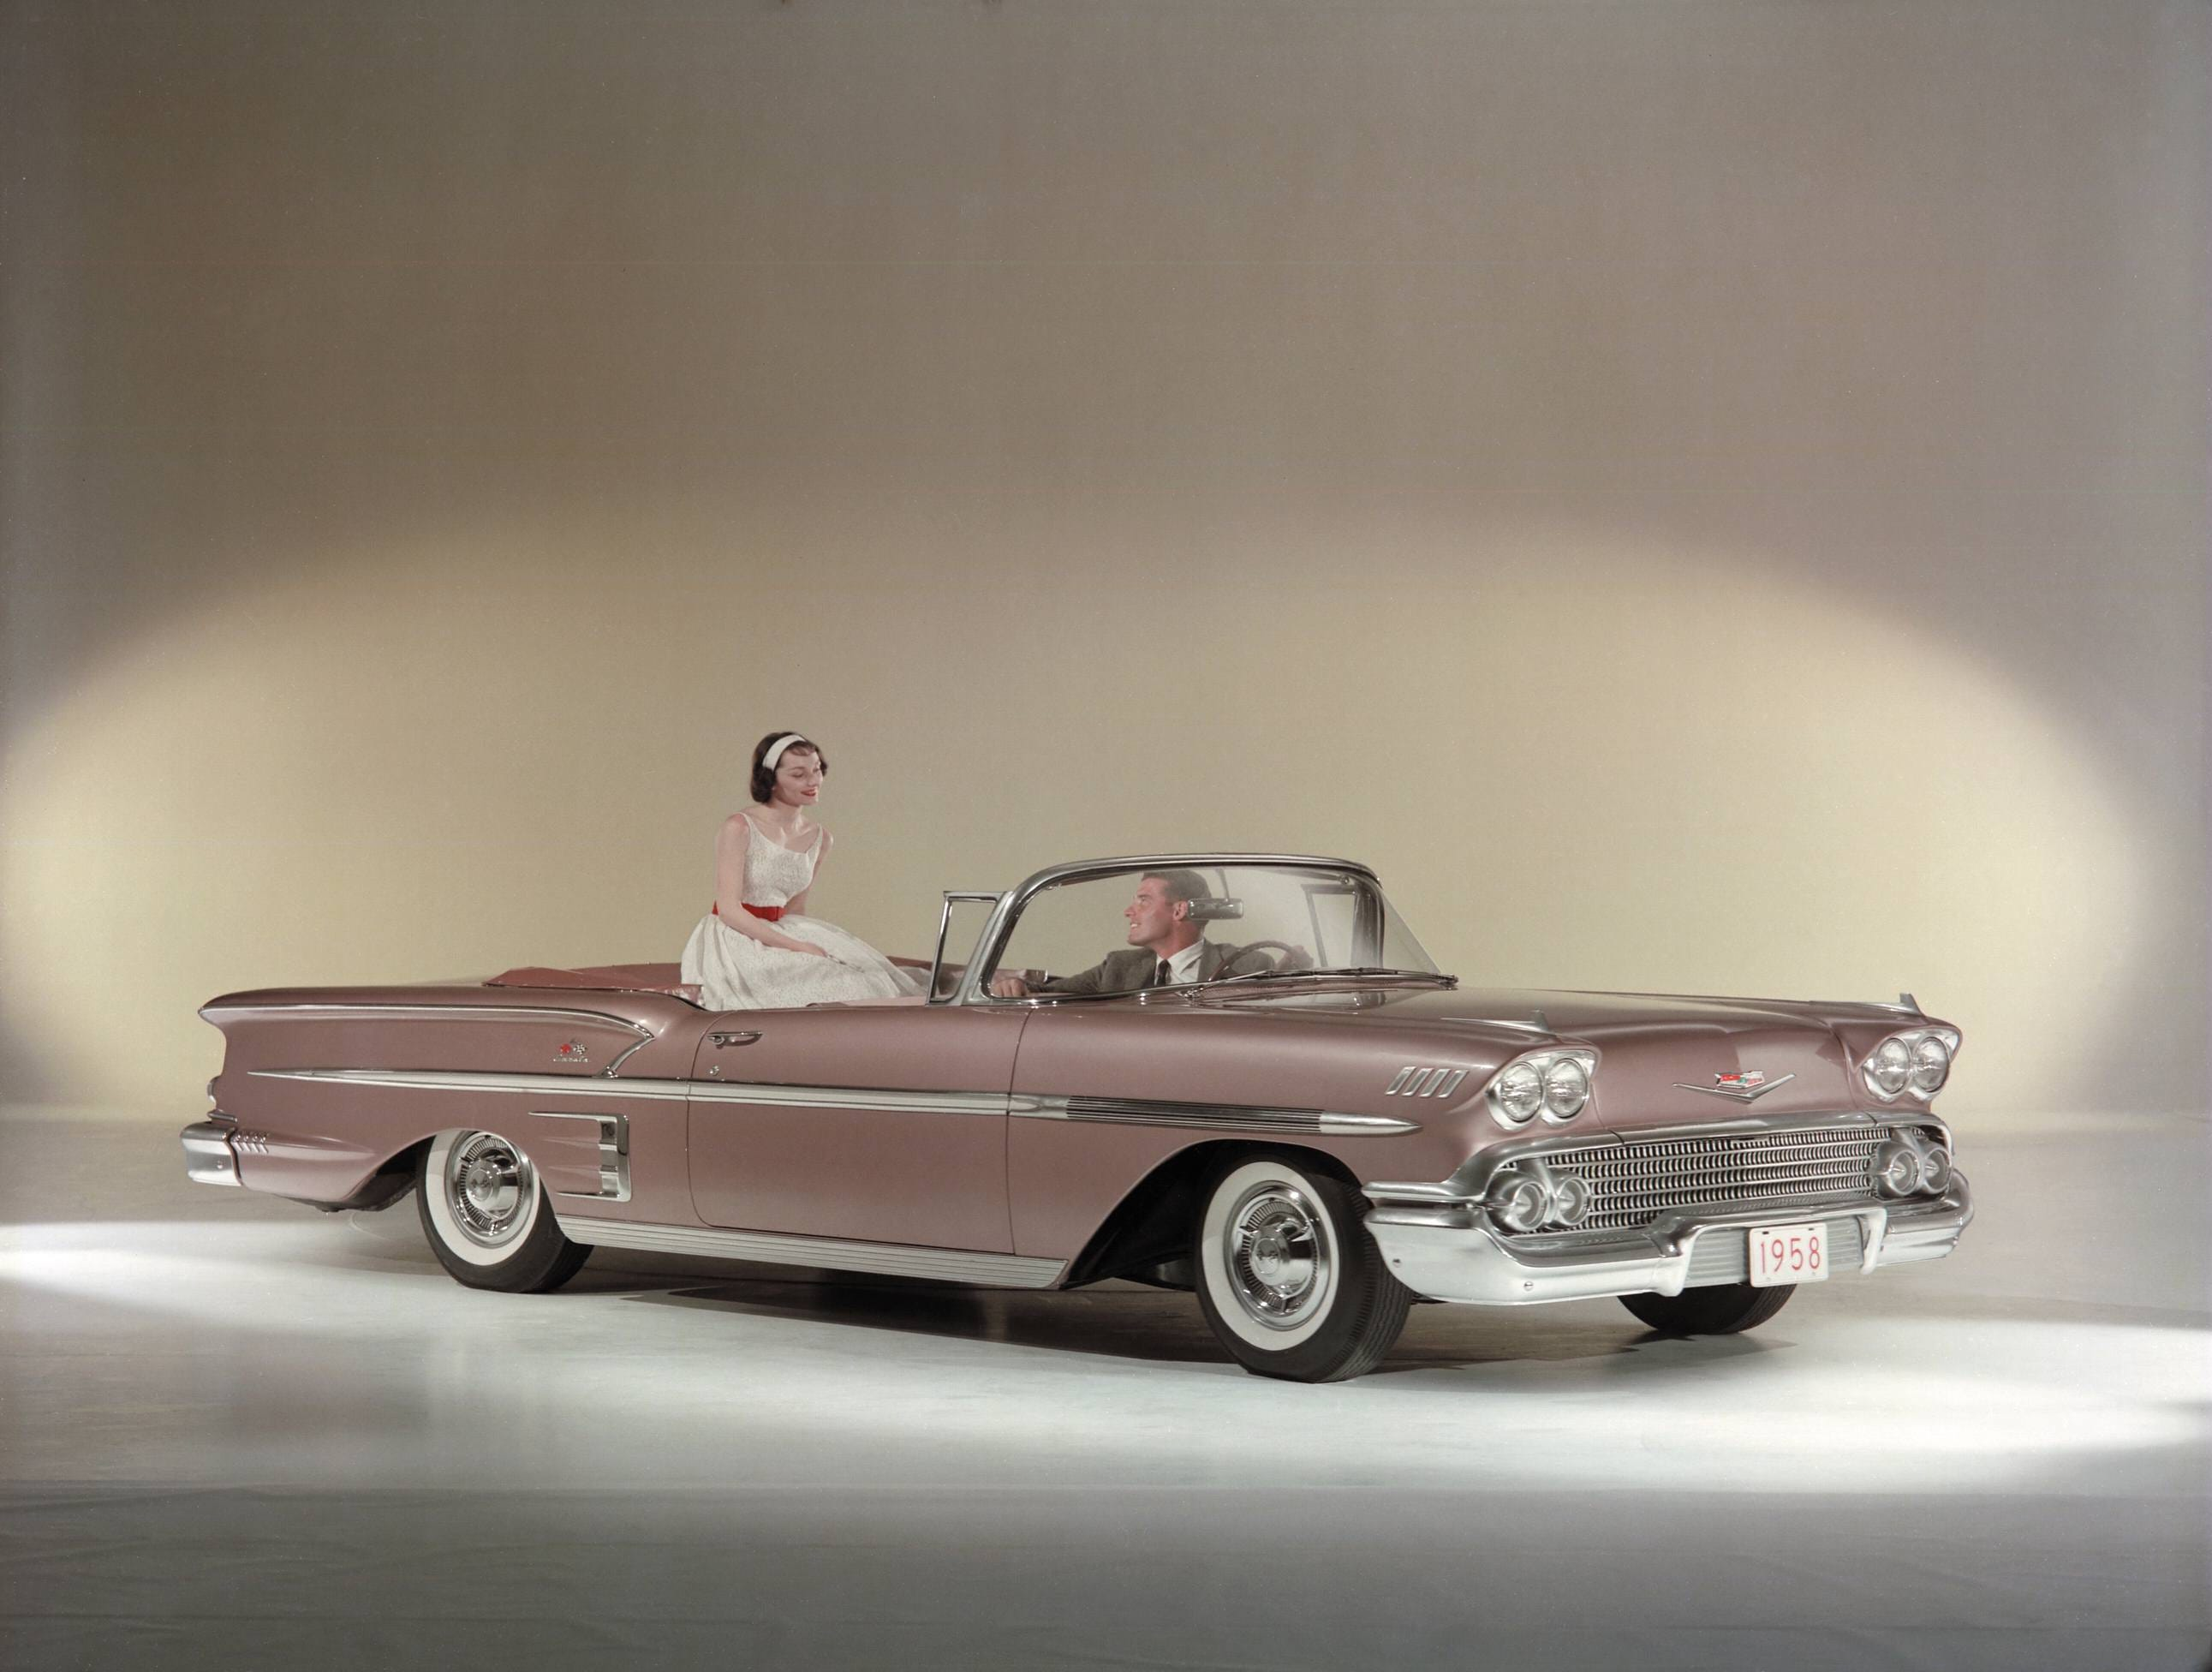 Promotional photo of a 1958 Chevrolet Impala.